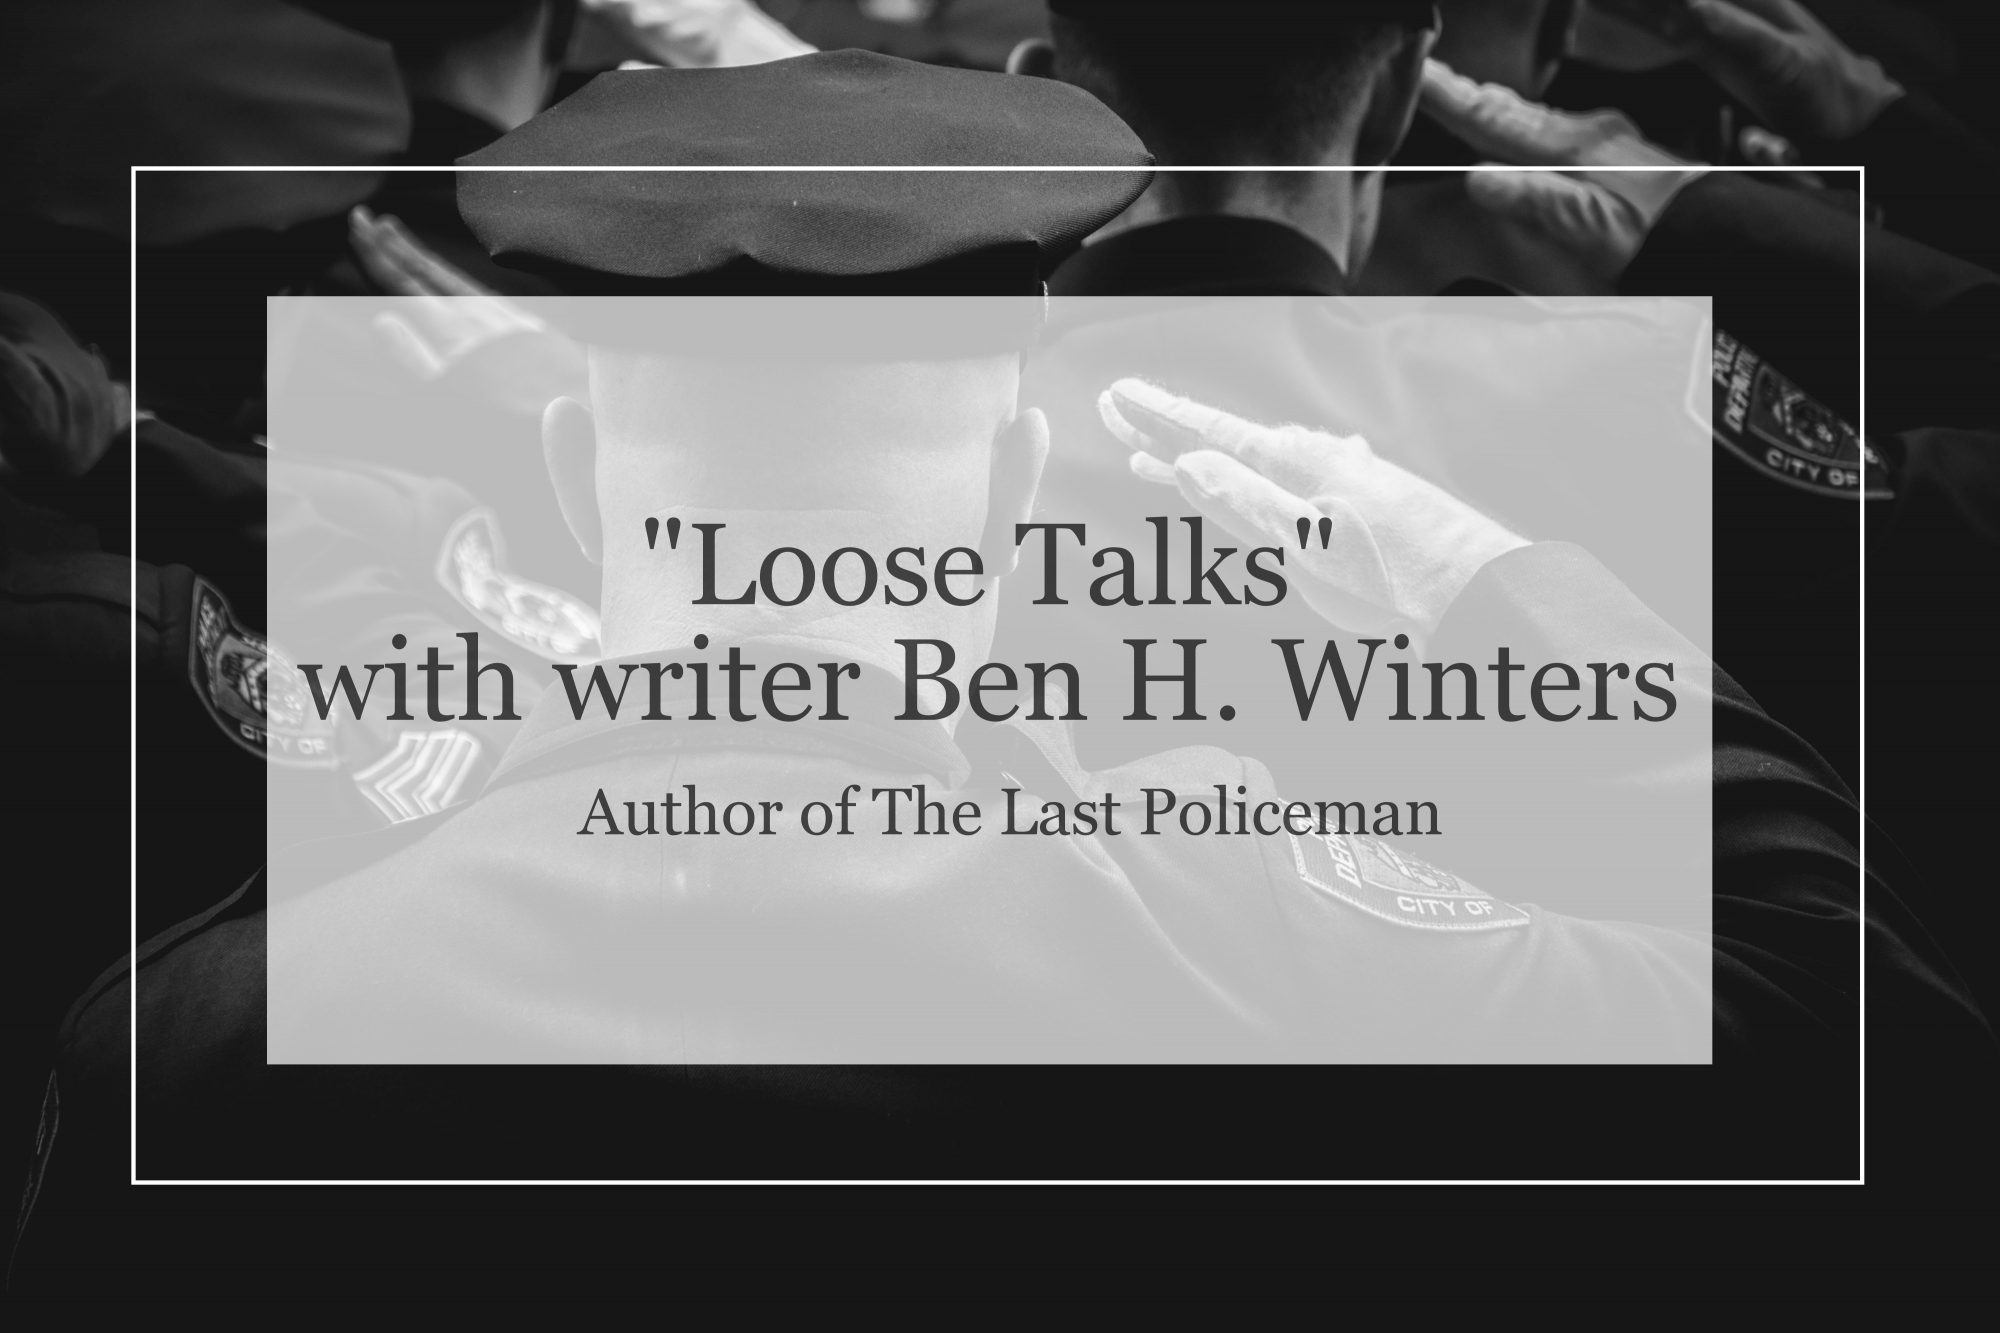 loose-talks-with-writer-ben-h-winters-interview